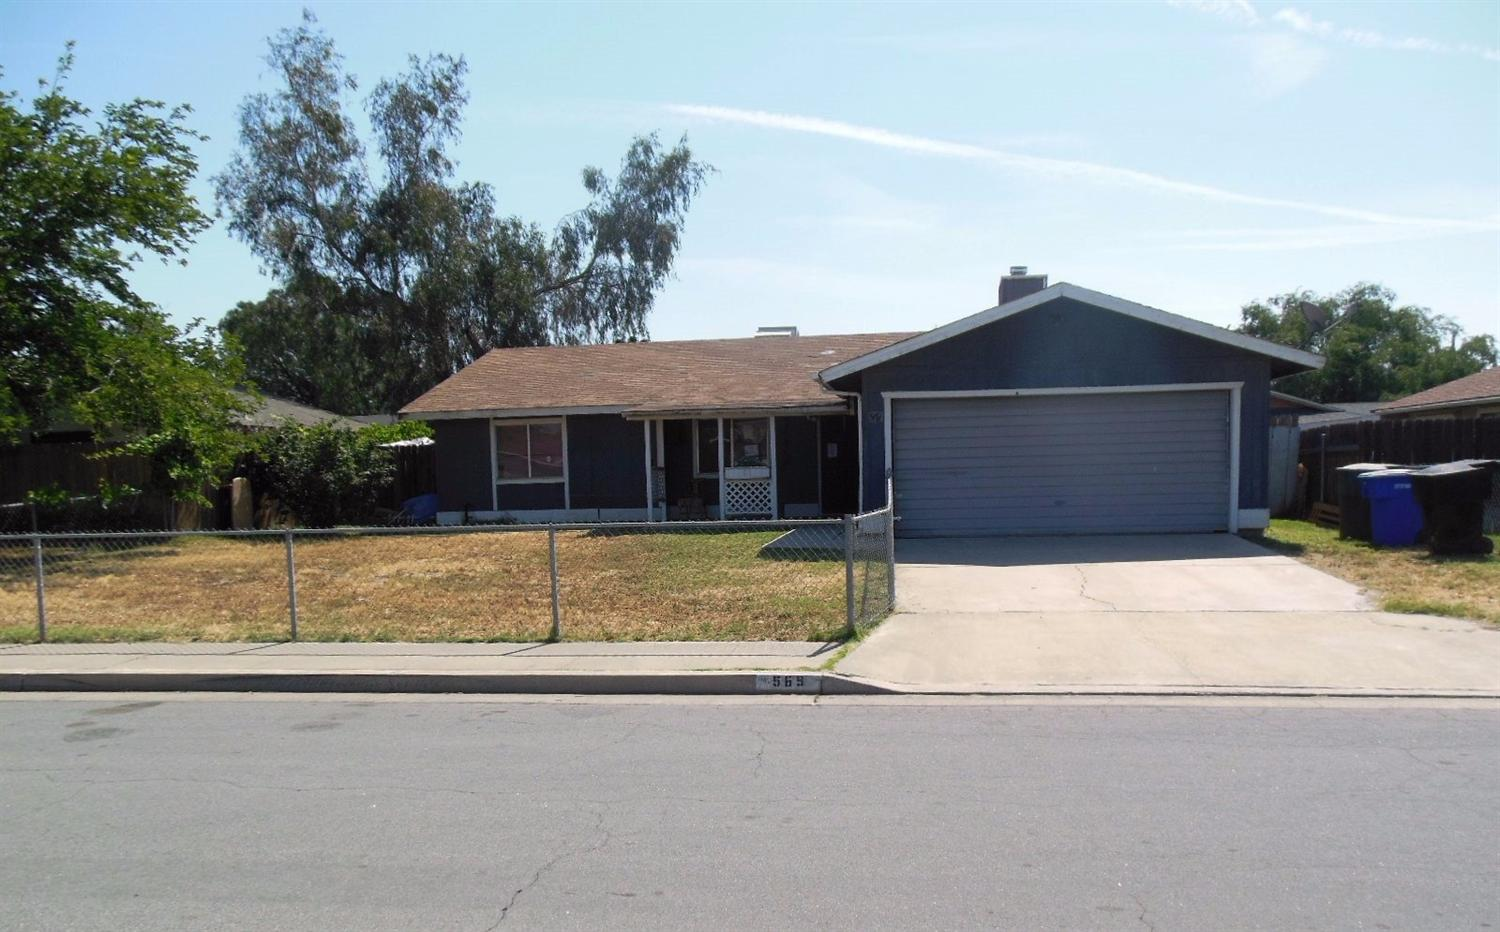 569 S 11 1/2 Ave, Hanford, CA 93230